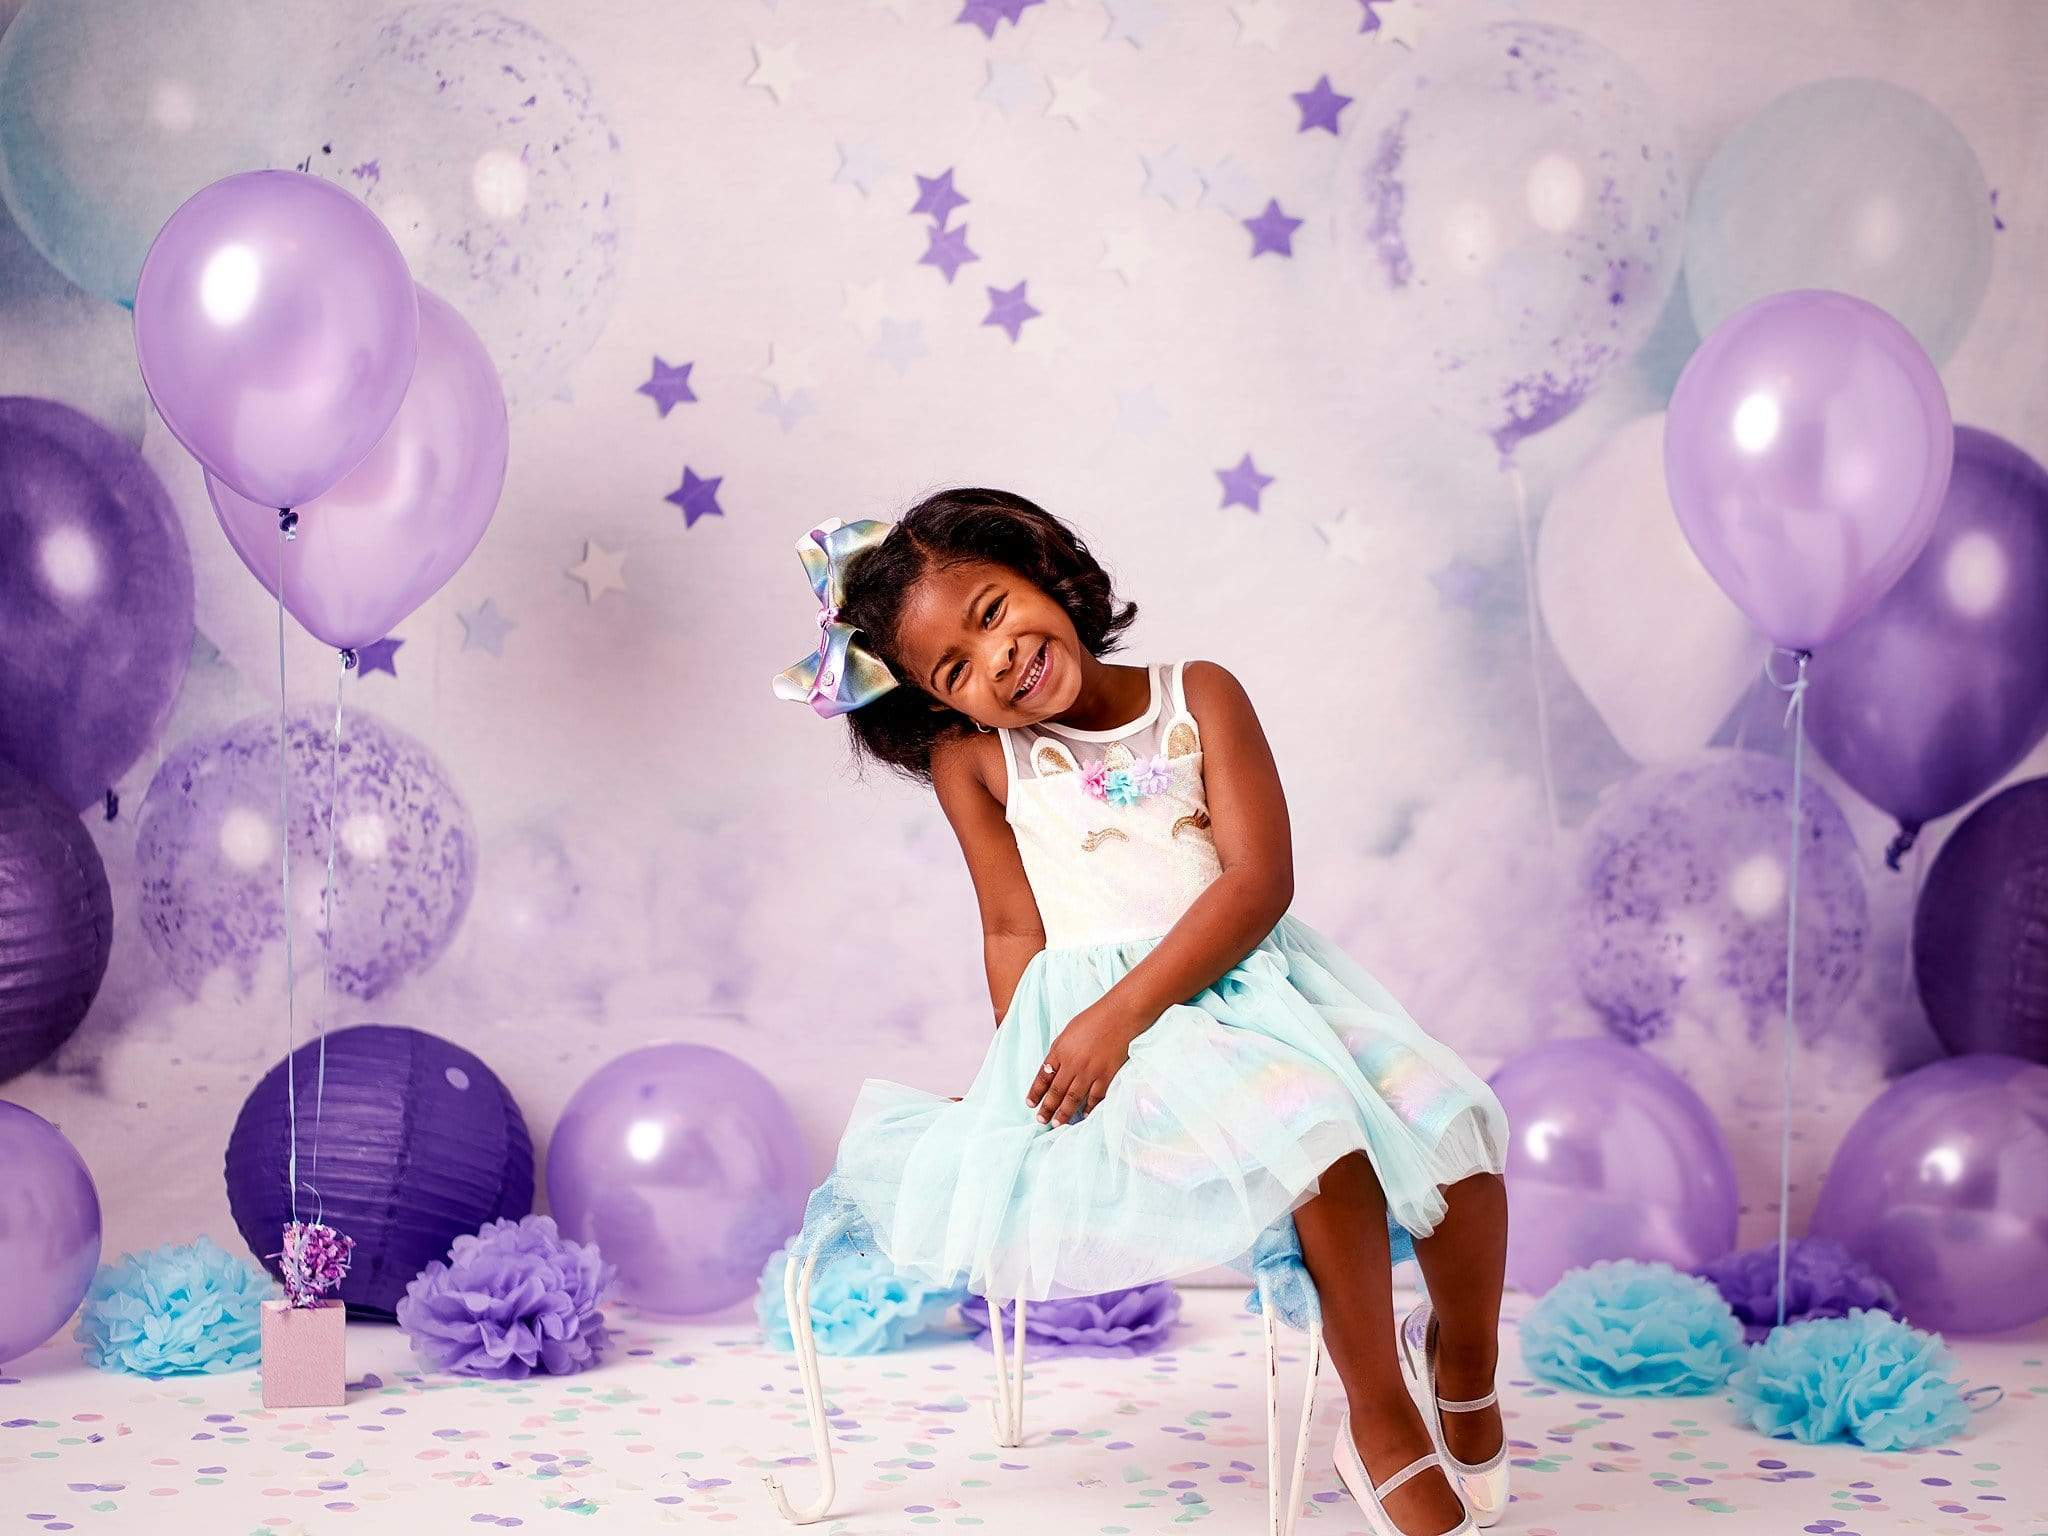 Load image into Gallery viewer, Katebackdrop:Kate Children Cake Smash Balloons Decoration Backdrop Designed By Rose Abbas